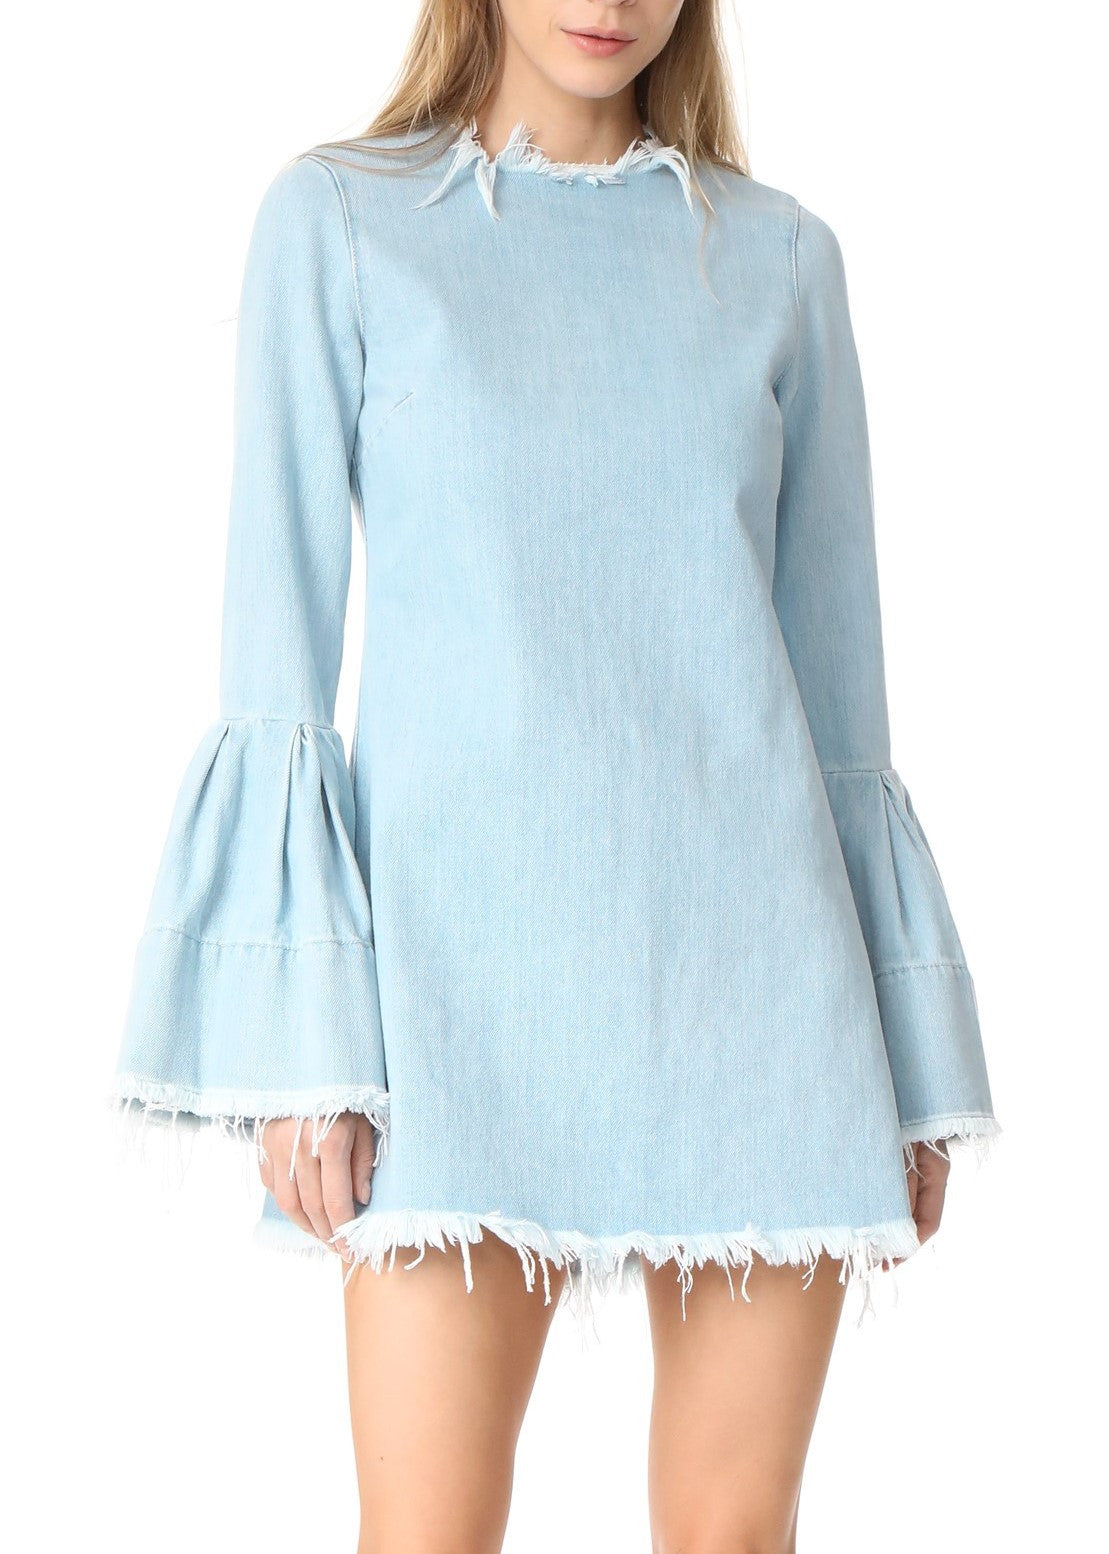 Marques Almeida denim dress with frill cuffs